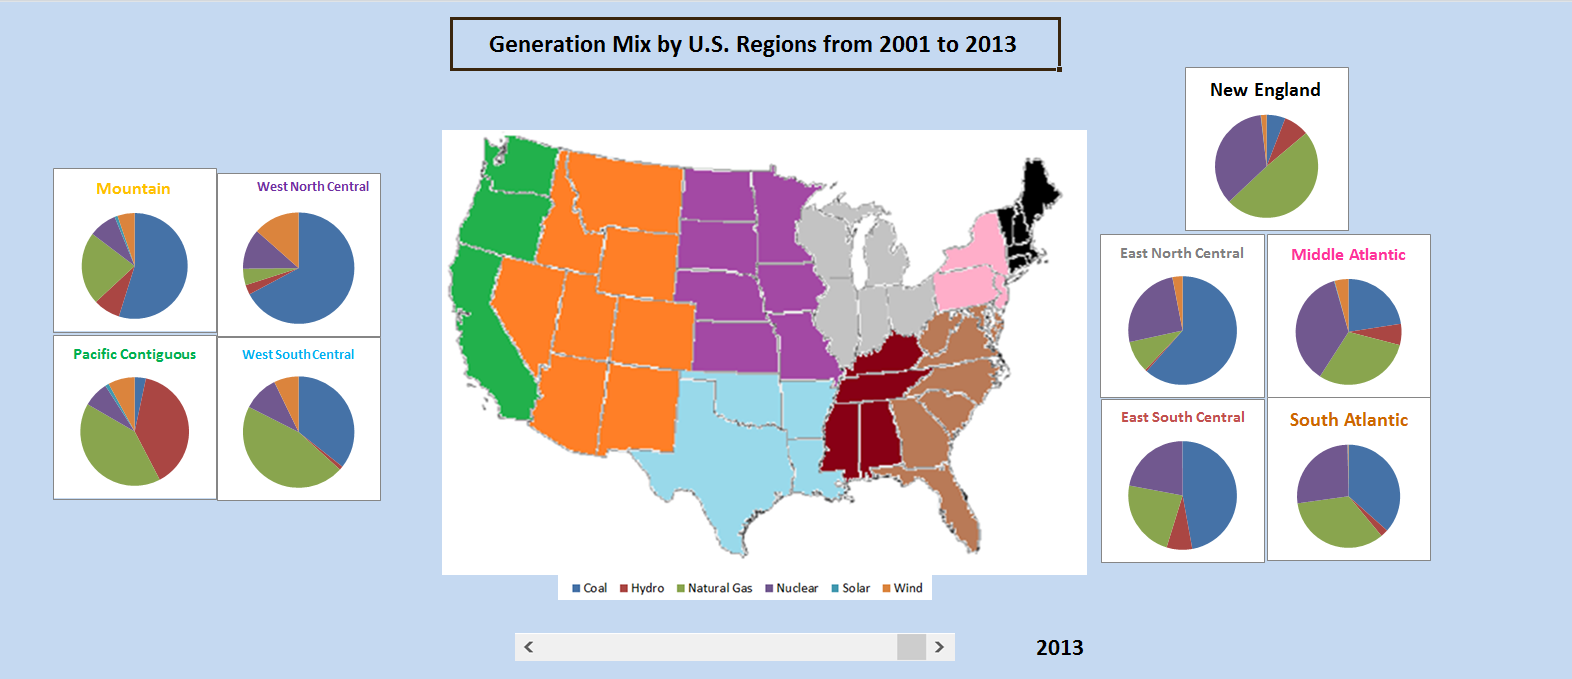 an interactive dashboard exploring the generation mixes of u s regions from 2001 to 2013